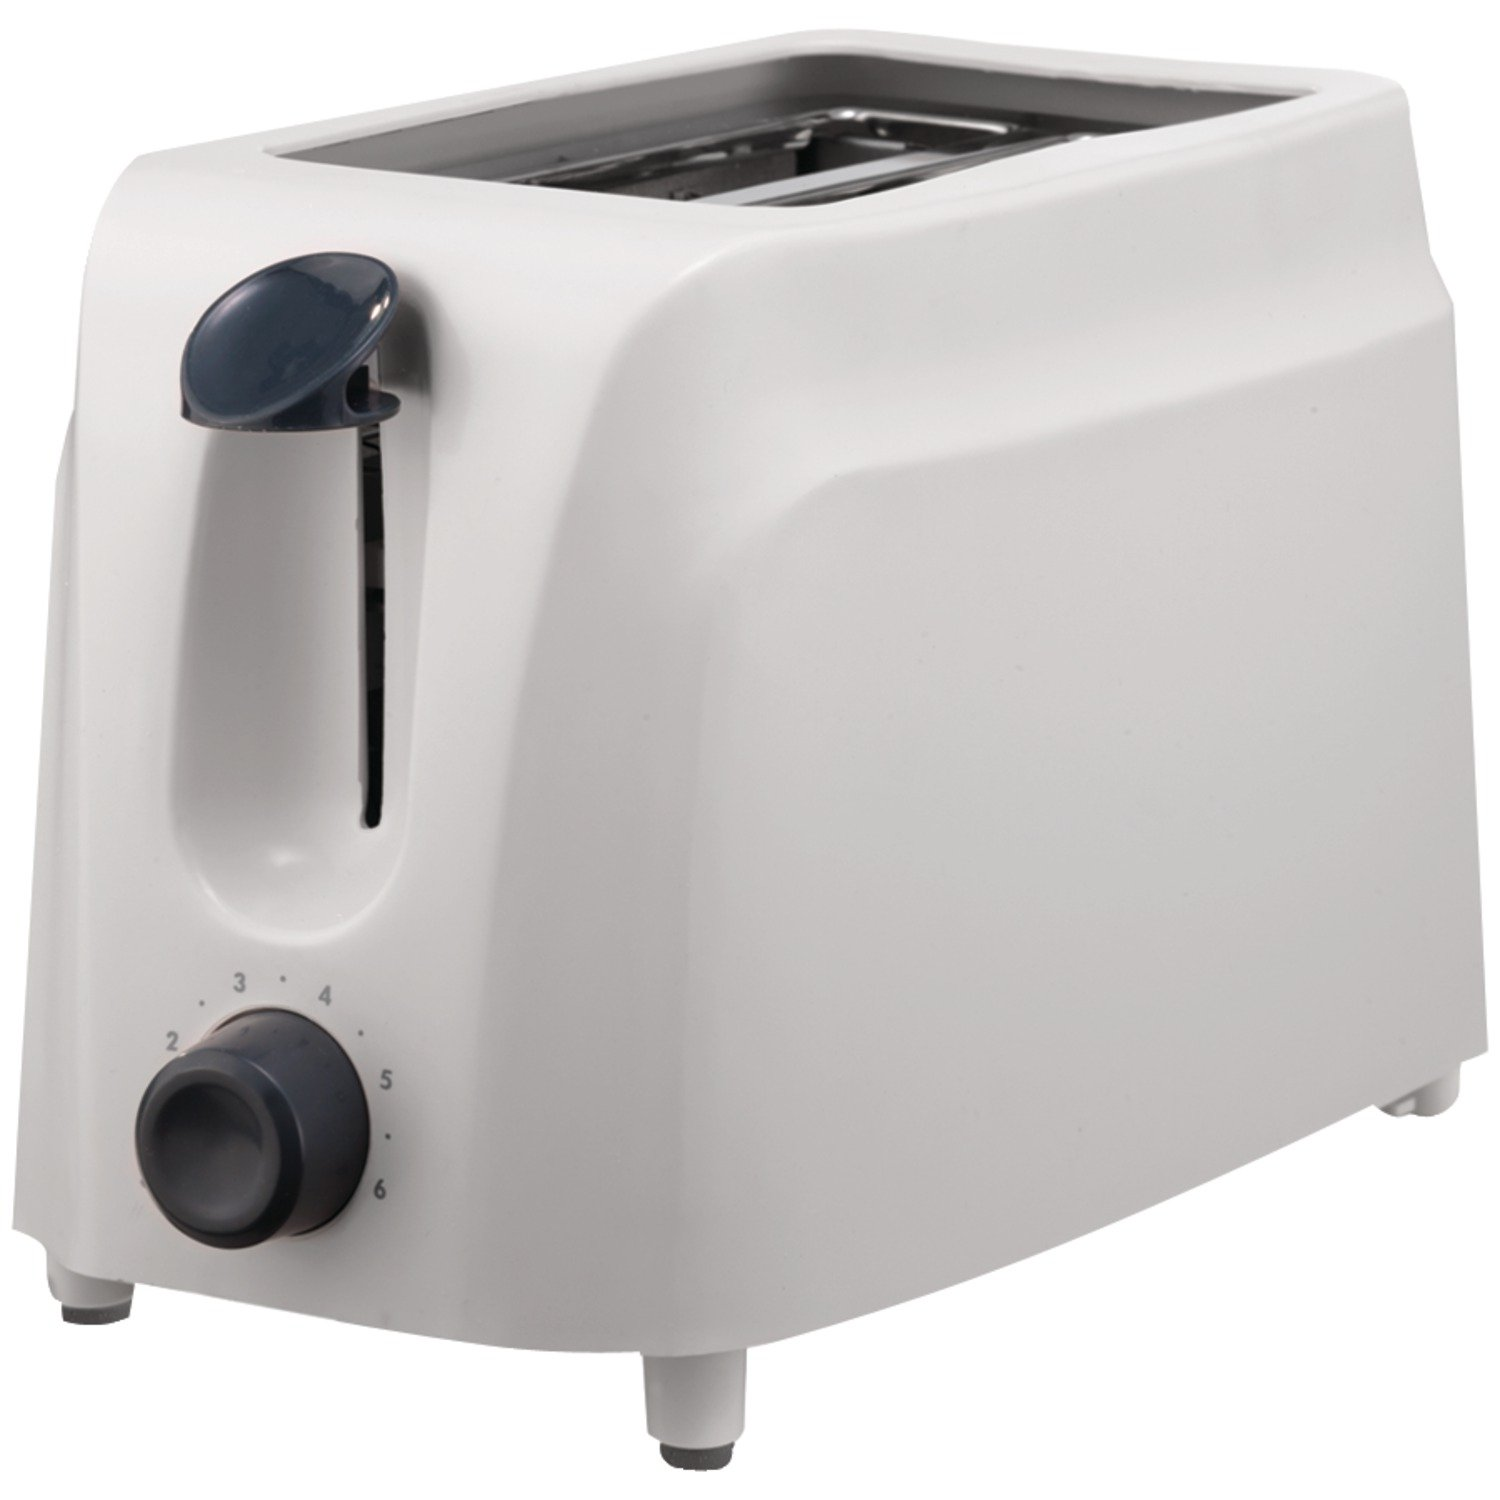 counter toaster gifts kitchen more accessories other home toasters inspire slice oster